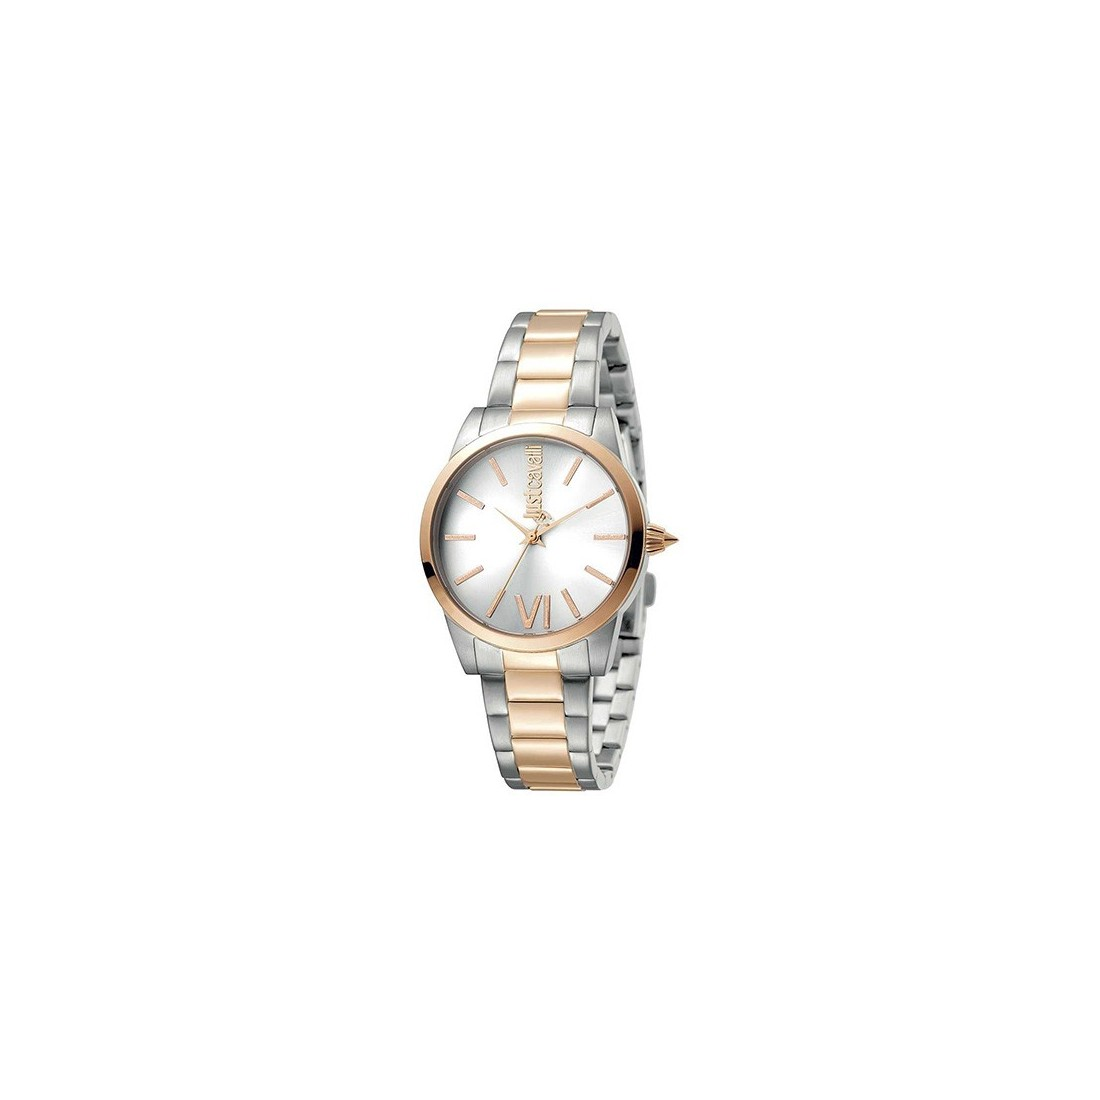 3cedee80e5 Just Cavalli Women's Only Time Watch Relaxed Collection JC1L010M0145